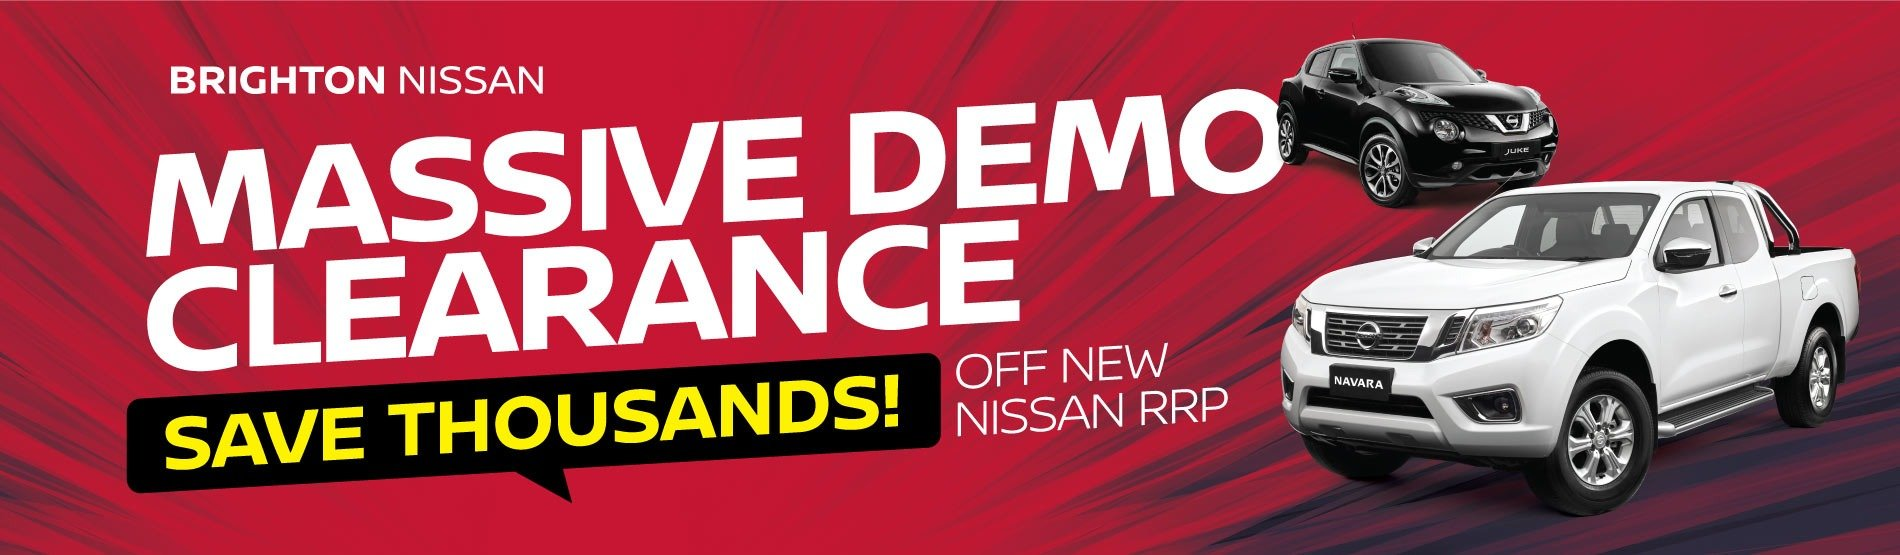 Brighton Nissan's Massive Demo Clearance